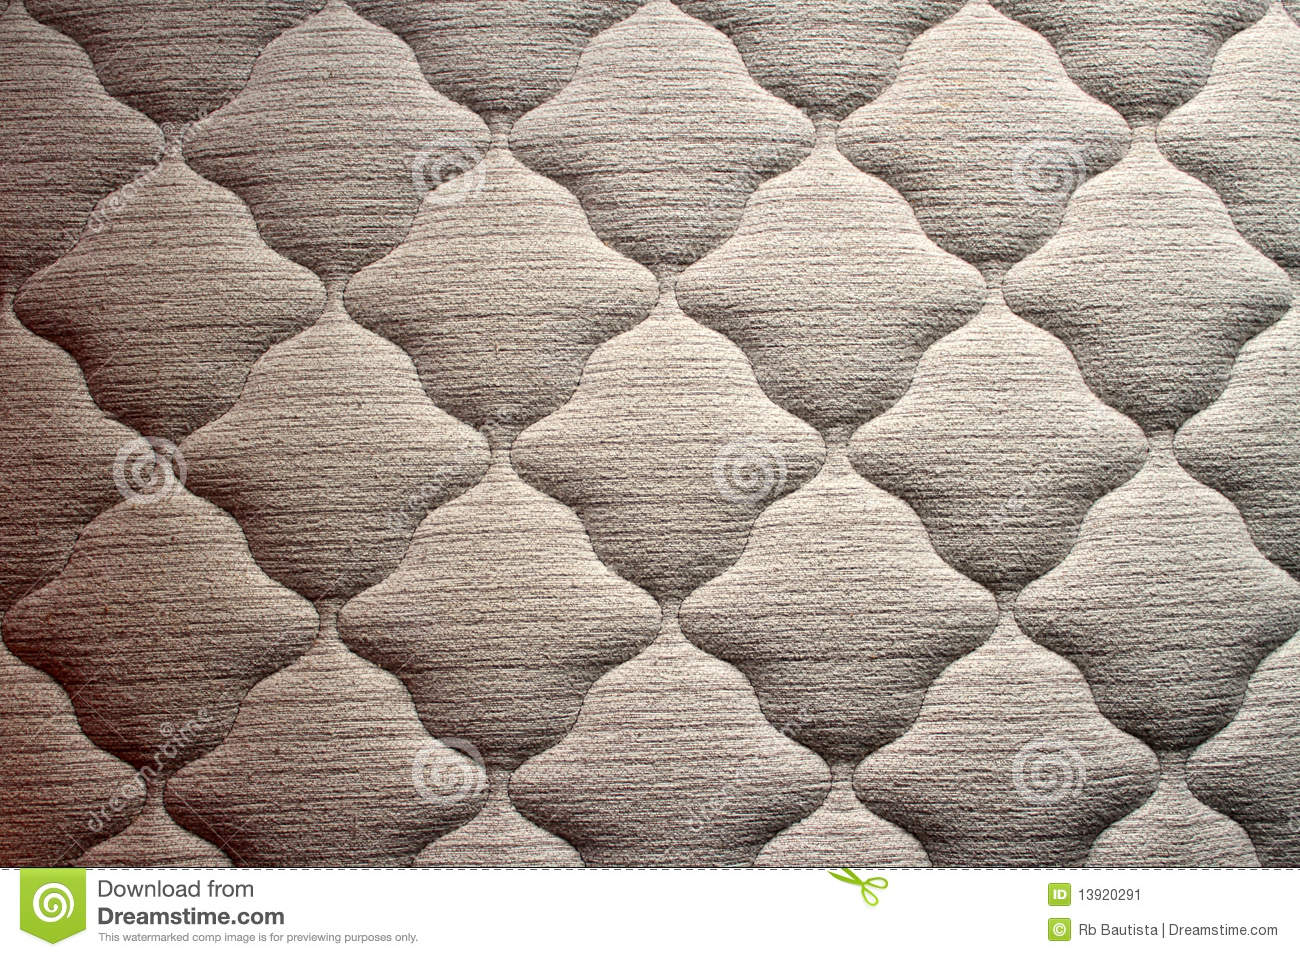 Brown bed sheet textures - Mattress Sheet Texture